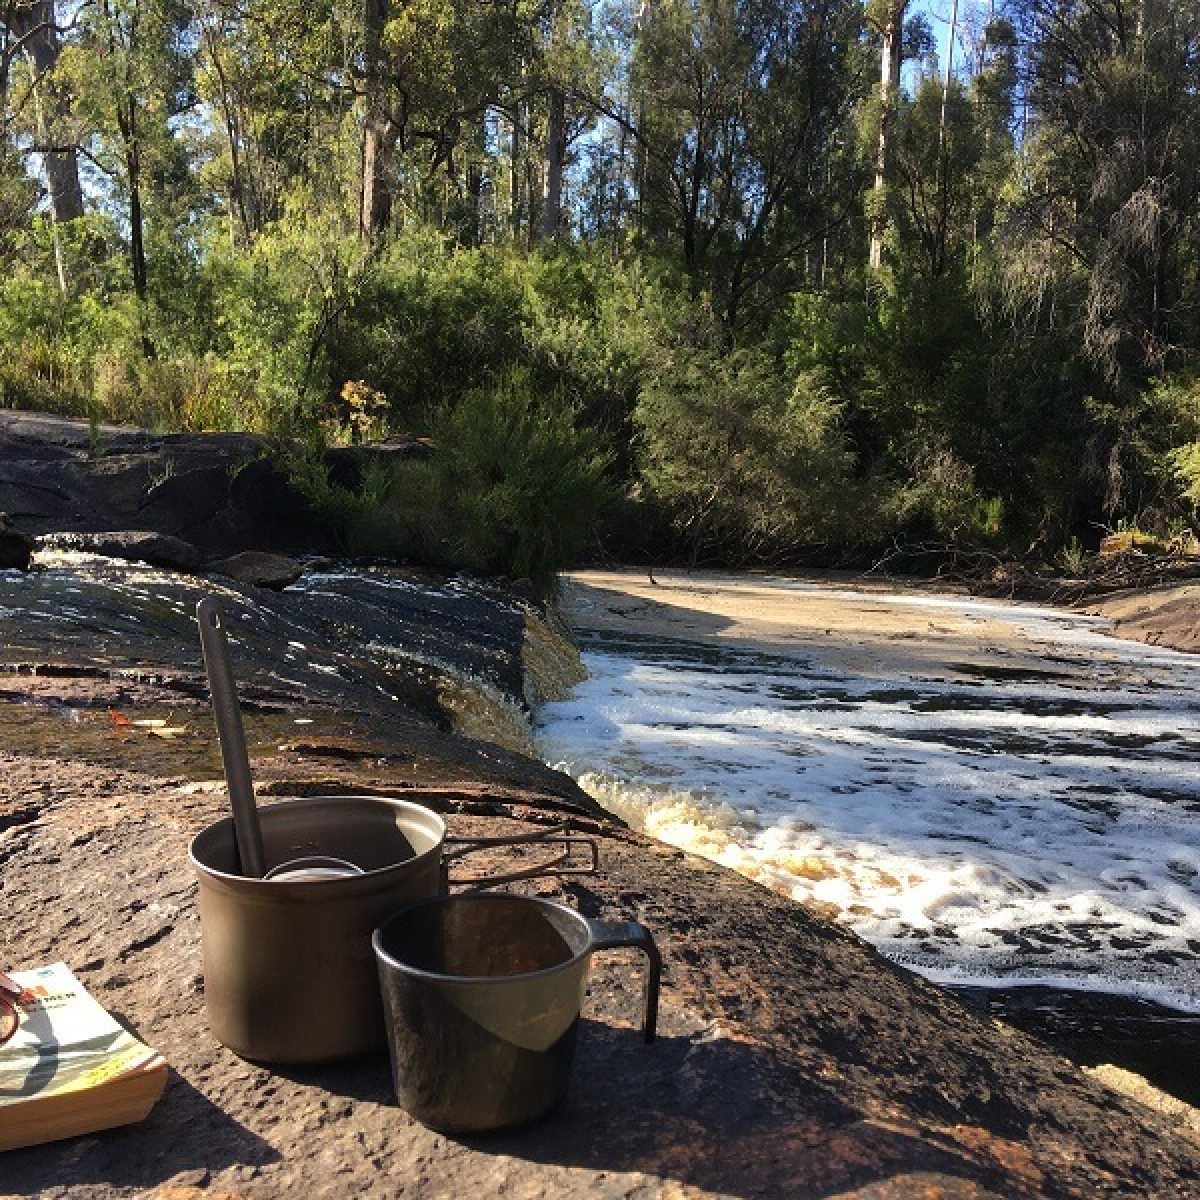 Cup of tea on bank of Dog Pool River Bibbulmun Track